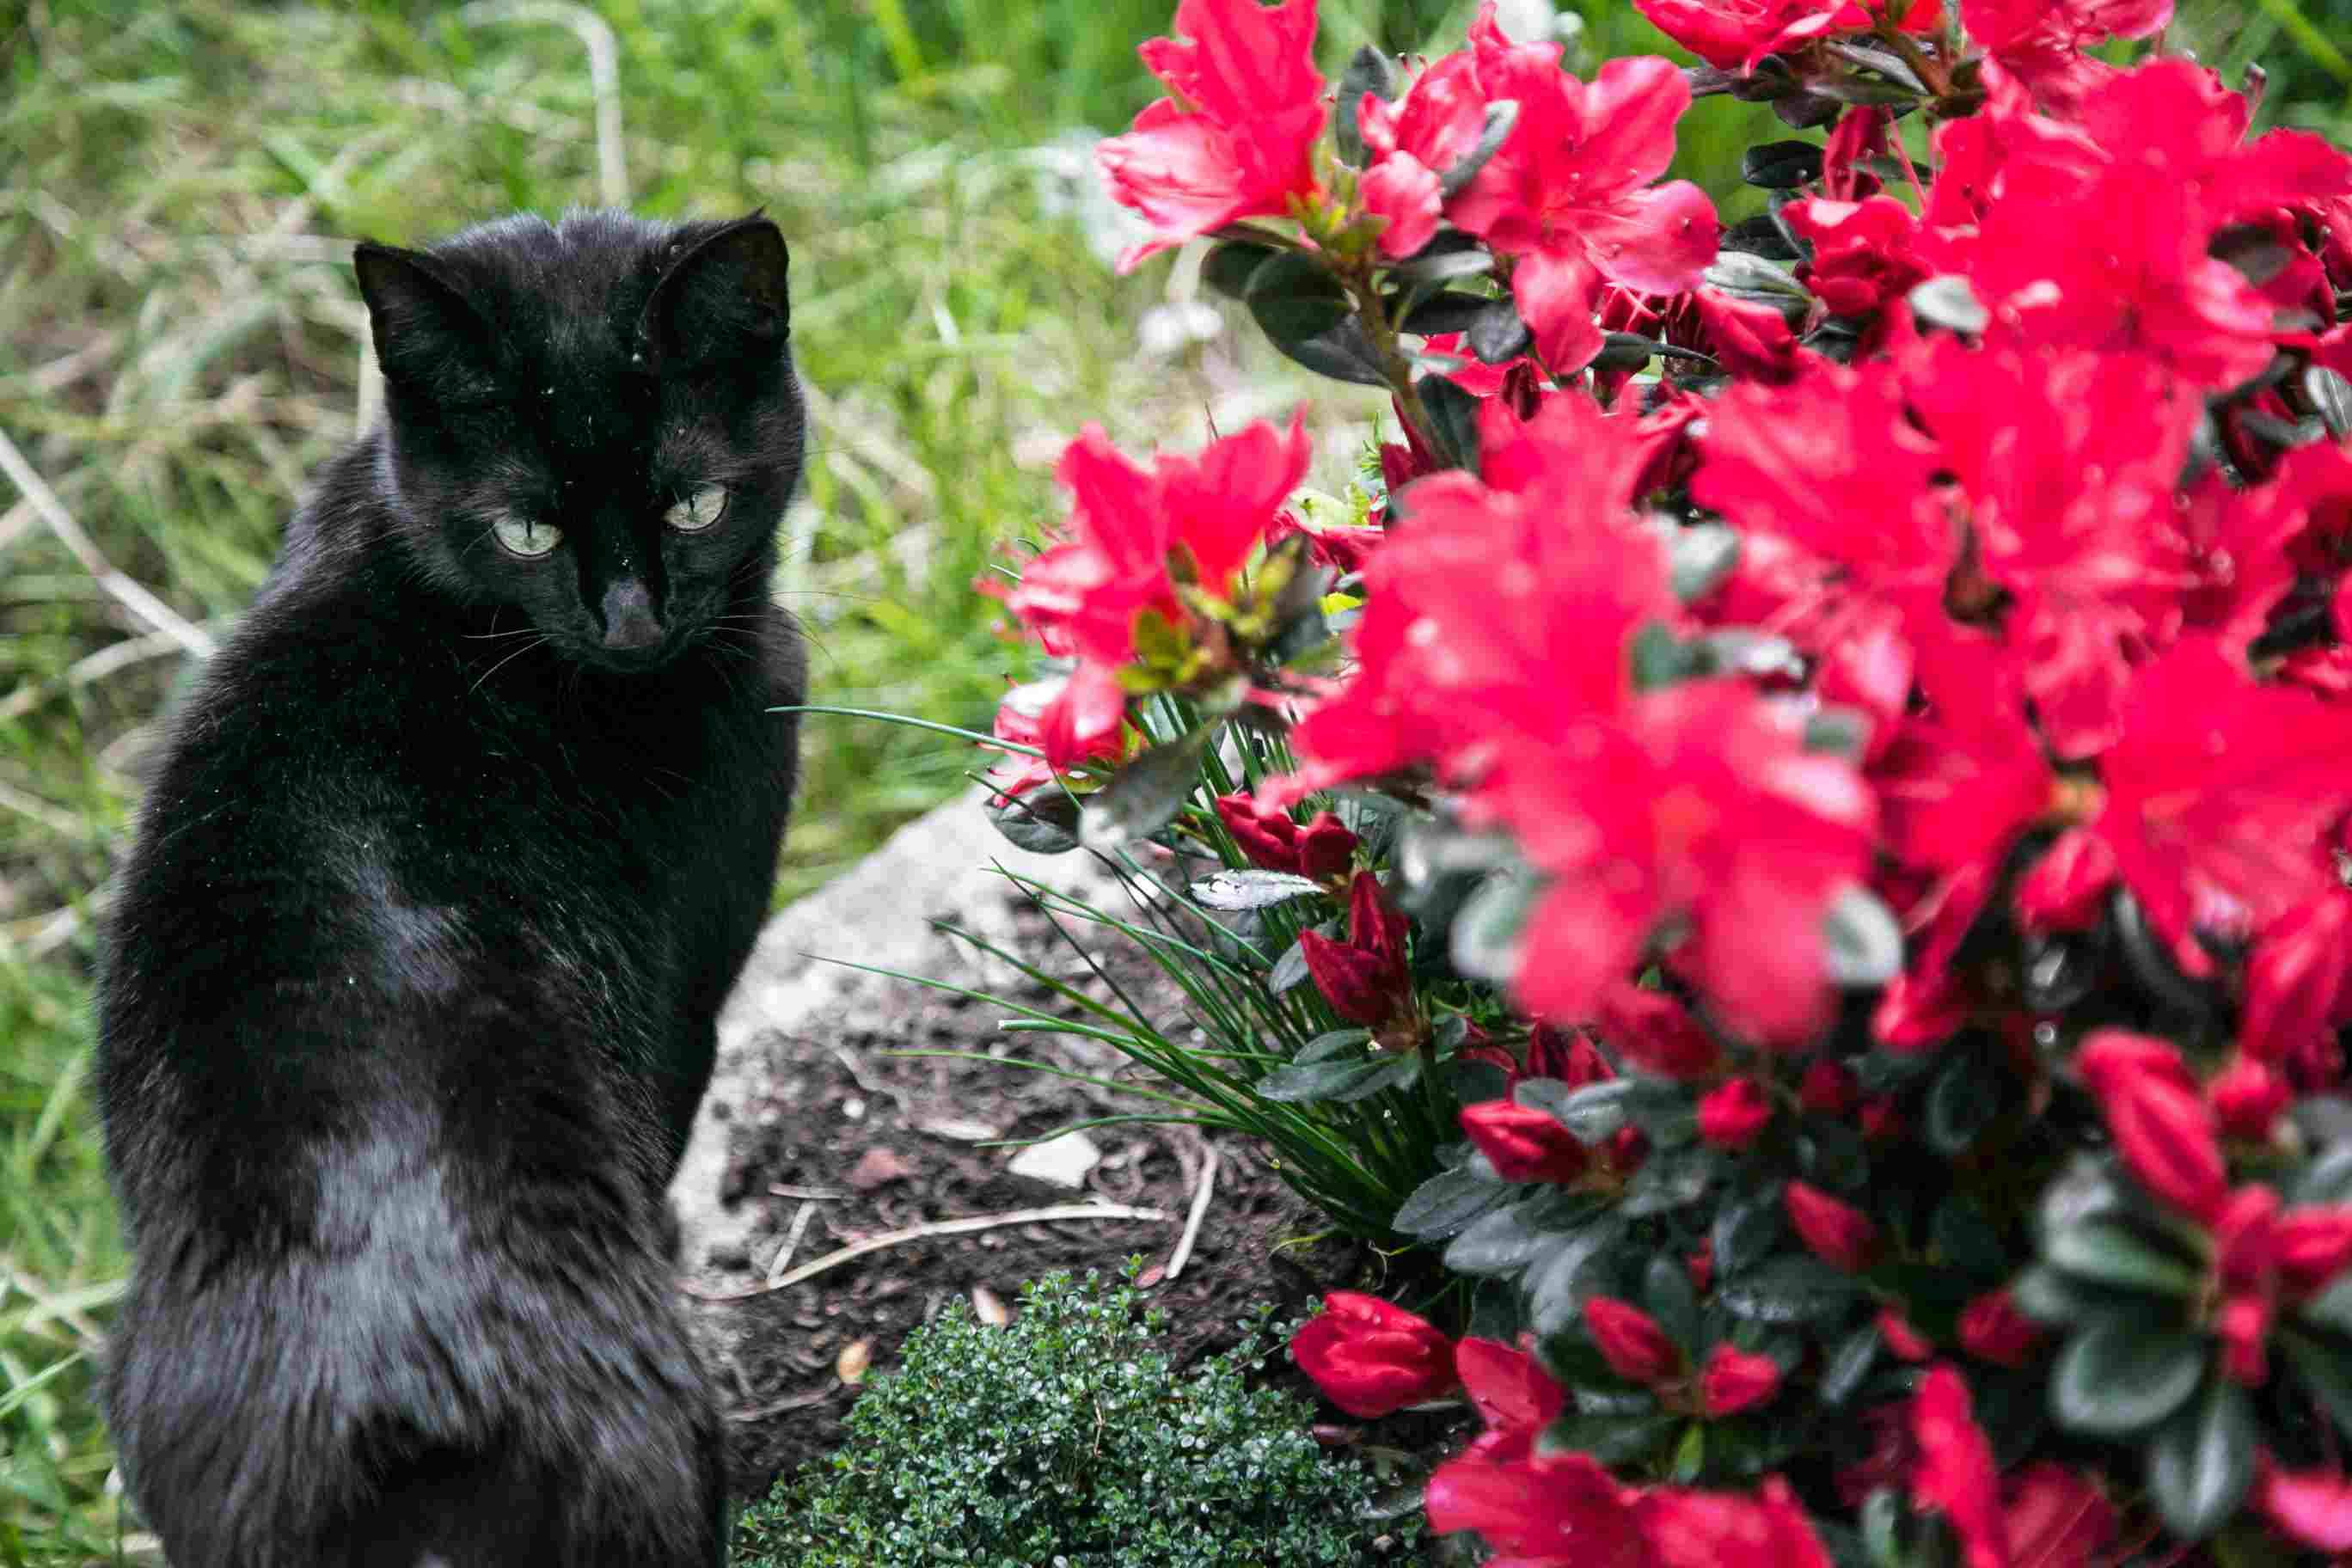 close up of black cat in garden 57dbf3a73df78c9cce7347a1